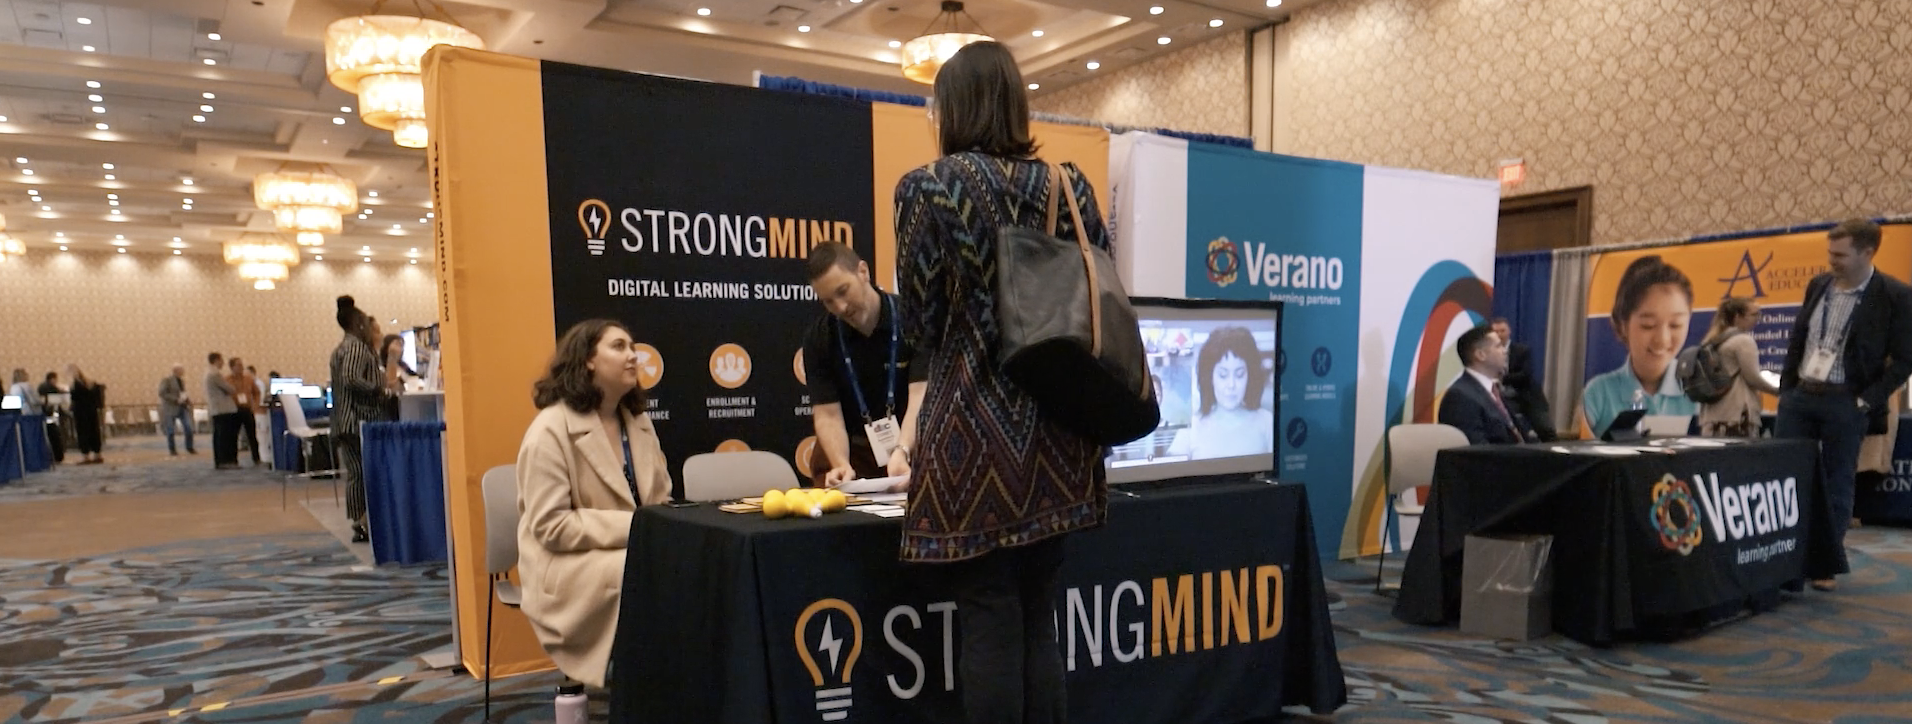 Strongmind Booth